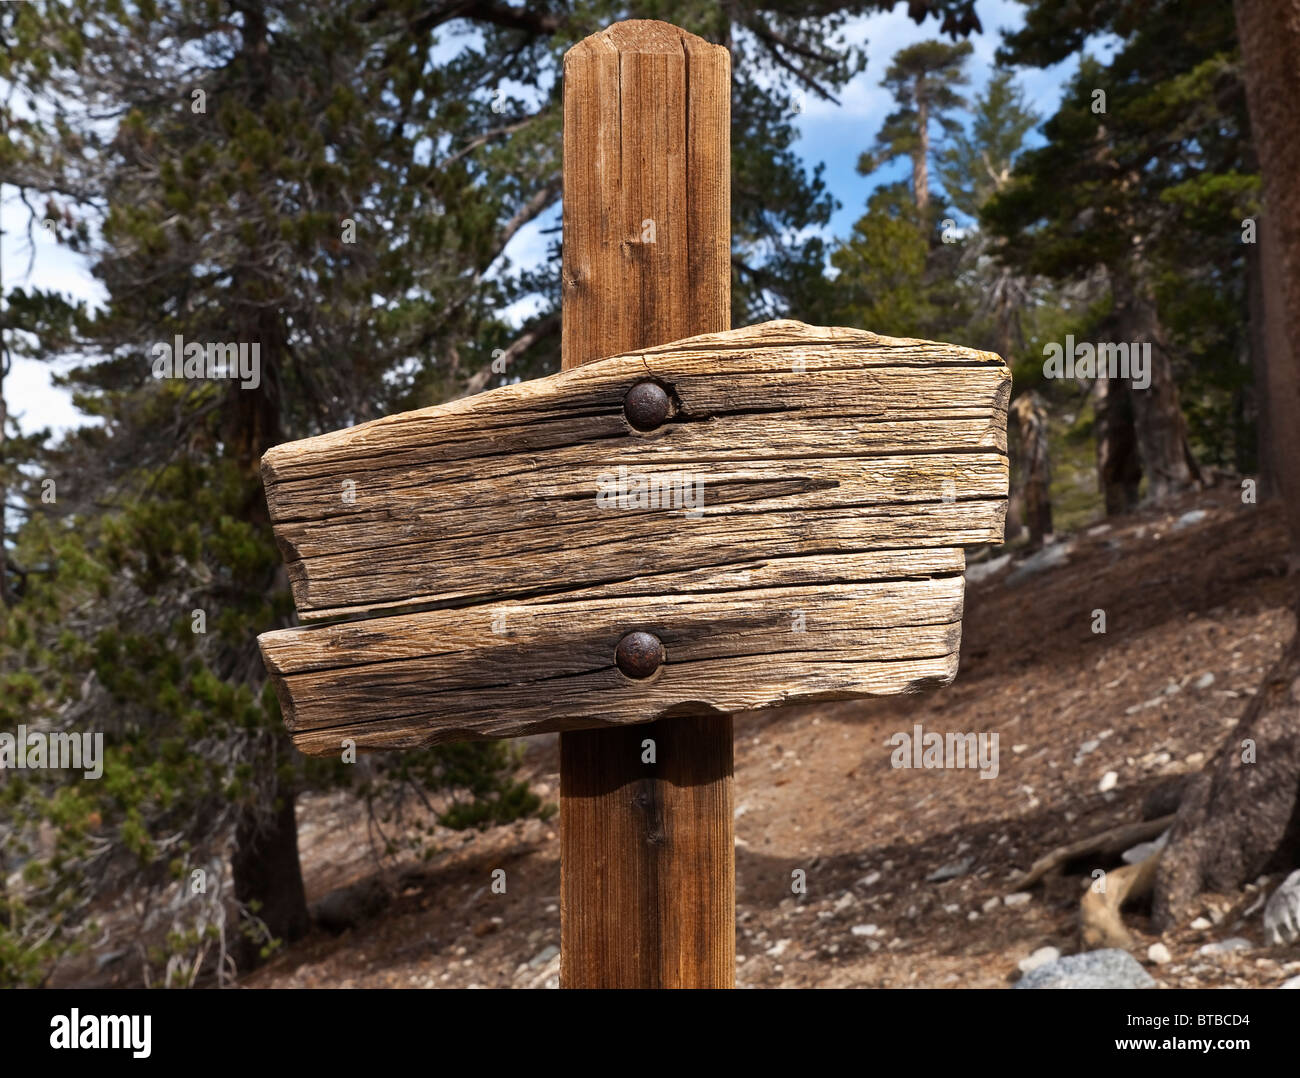 Rustic Blank Wooden Sign On A Hiking Trail High In The Mountains Stock Photo Alamy